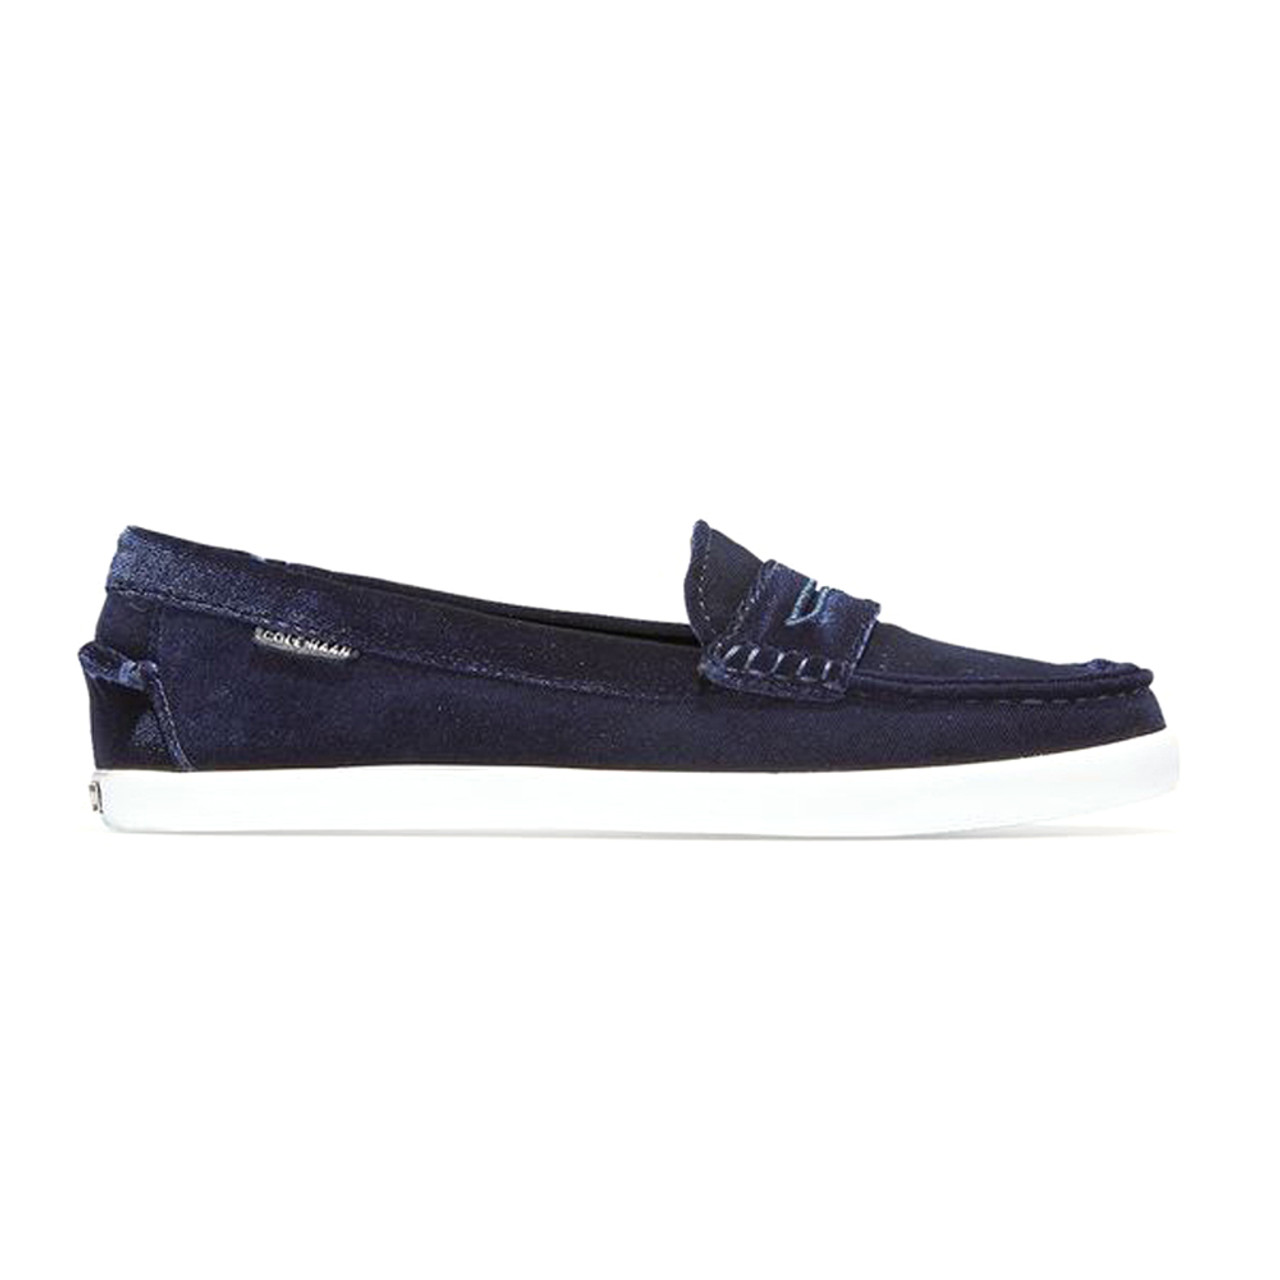 820b5e3d86c Cole Haan Women s Nantucket Loafer II Navy Velvet - Shop now   Shoolu.com